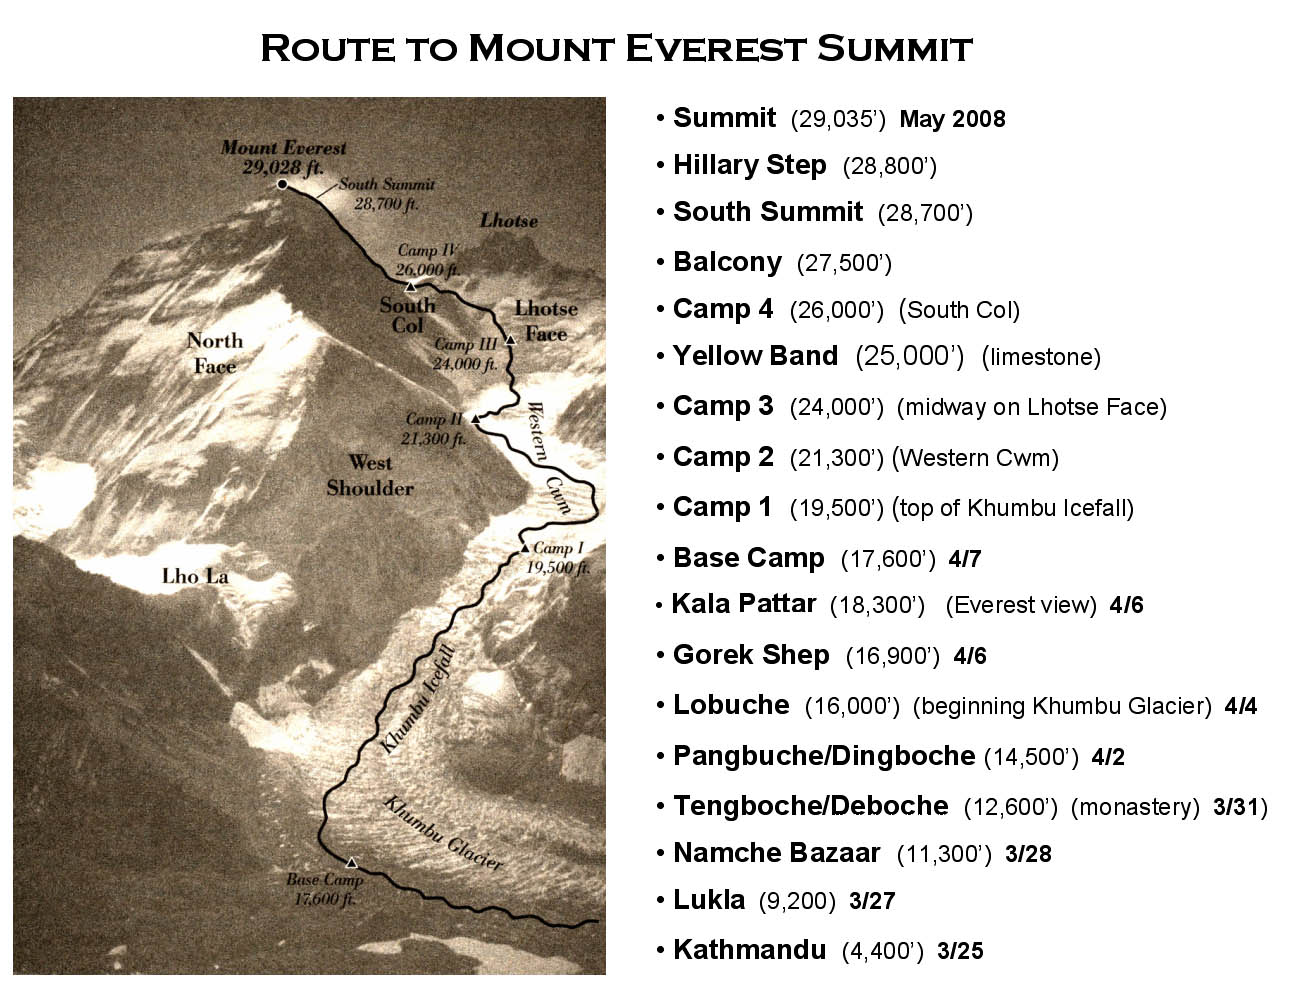 hight resolution of http images spaceref com news 2008 everest everest south route illustration